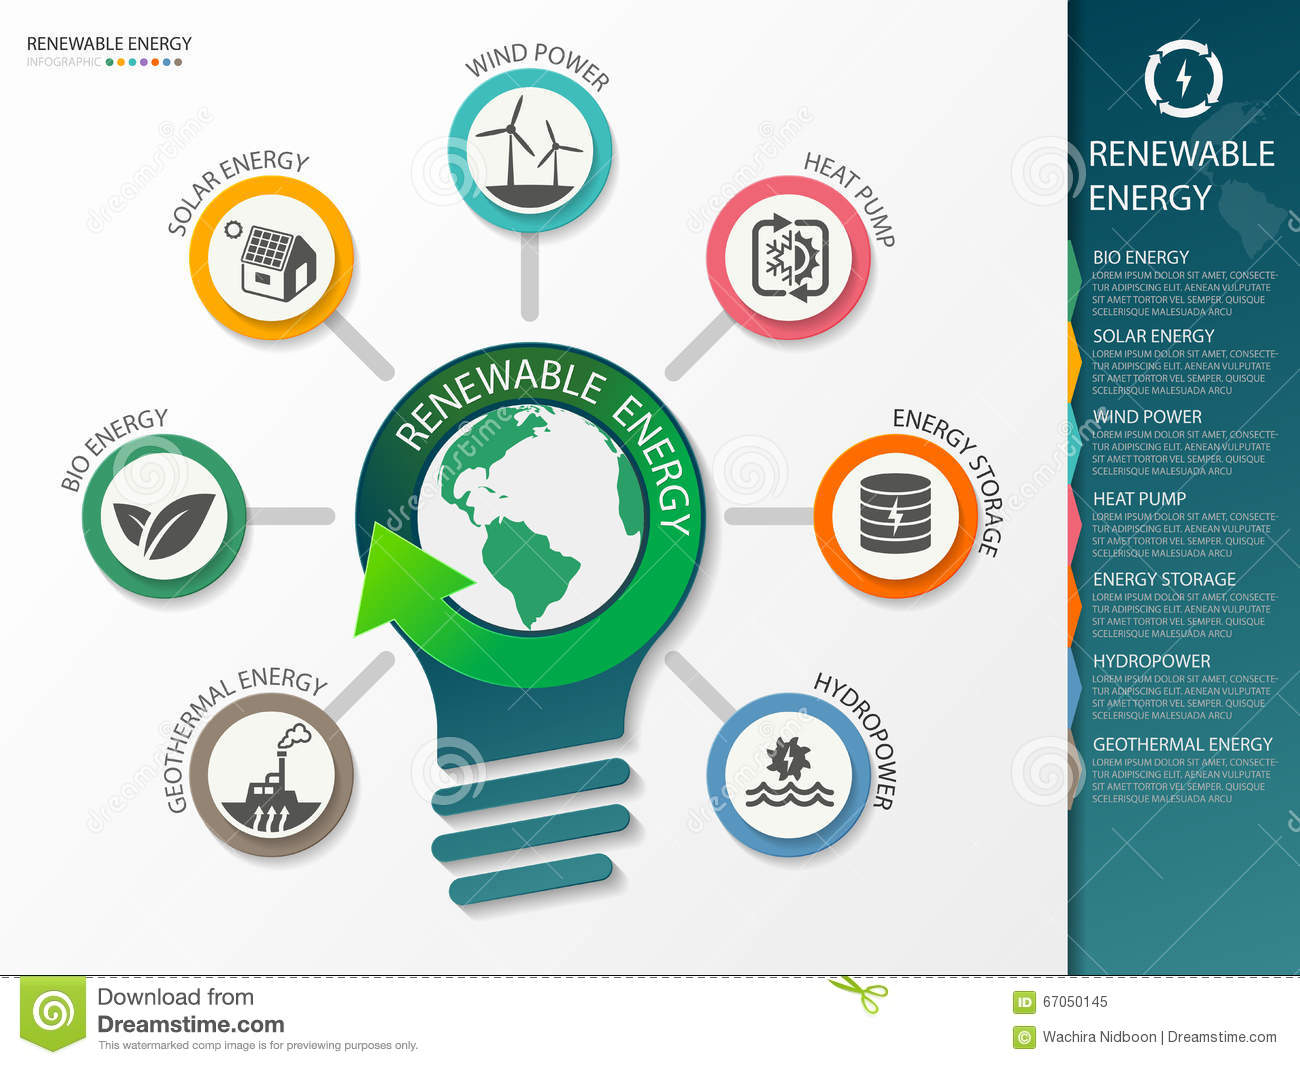 7 types of renewable energy to support commercial sustainability